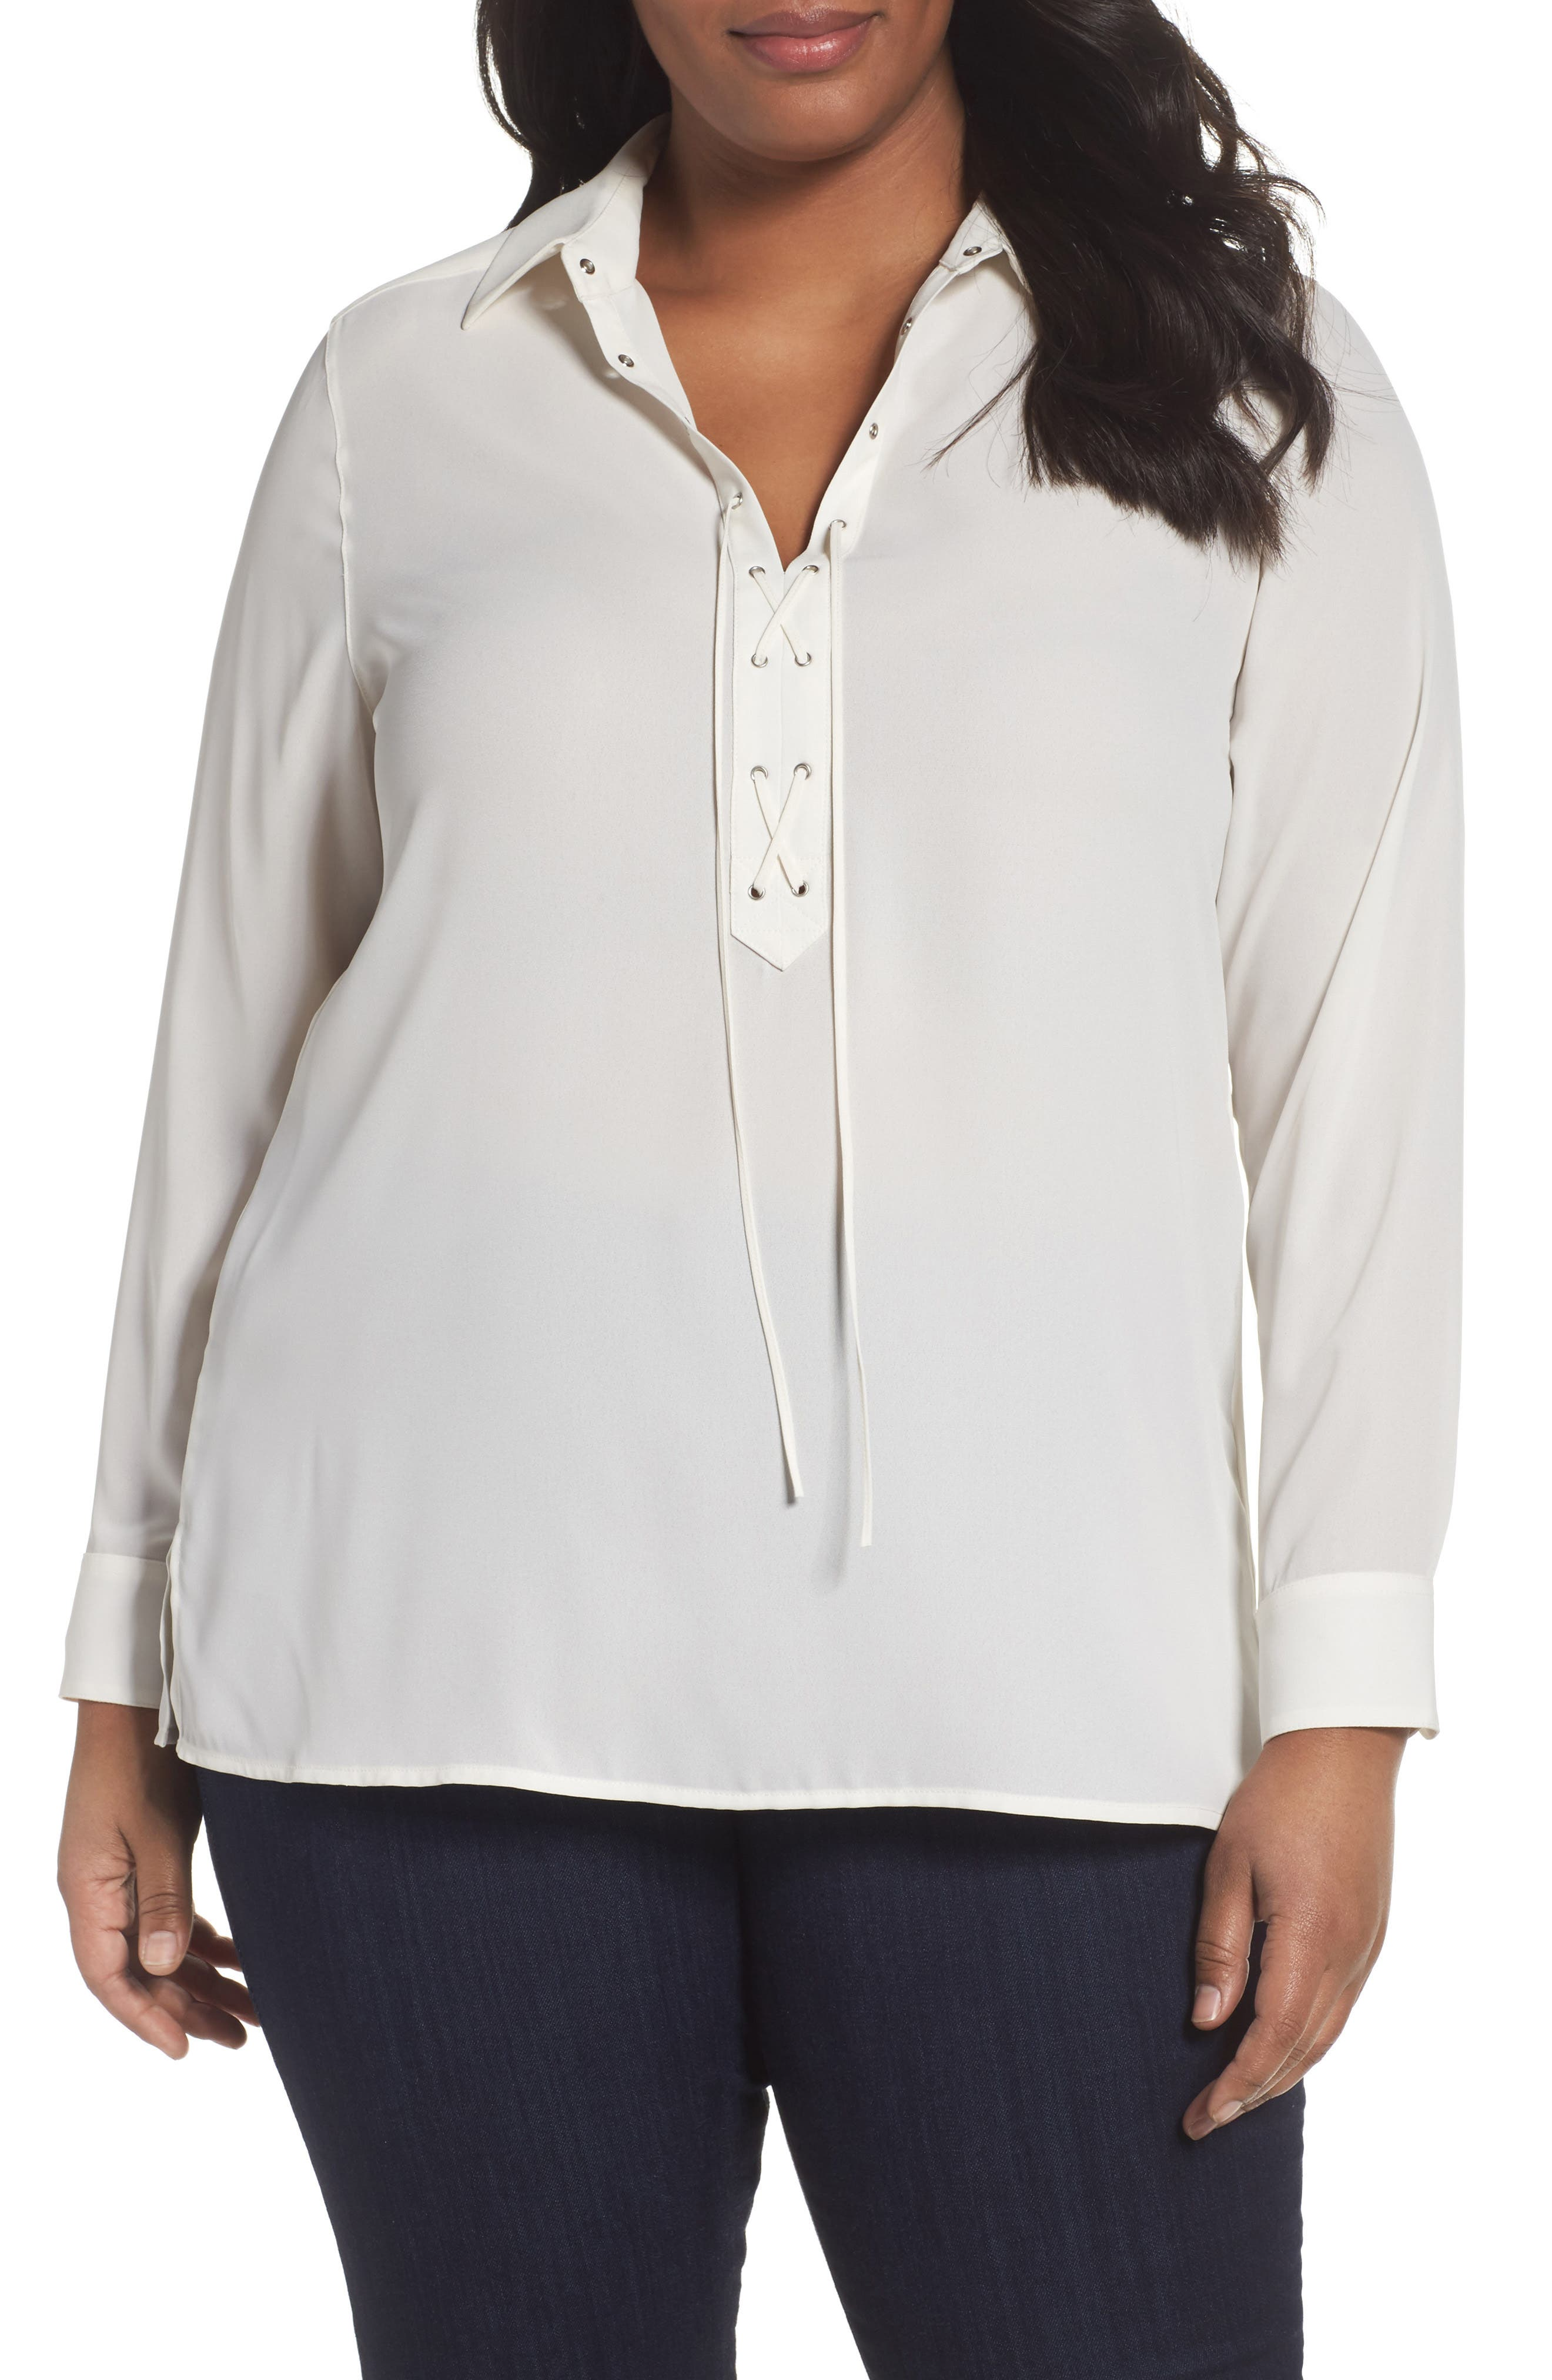 Foxcroft Lace-Up Blouse (Plus Size)